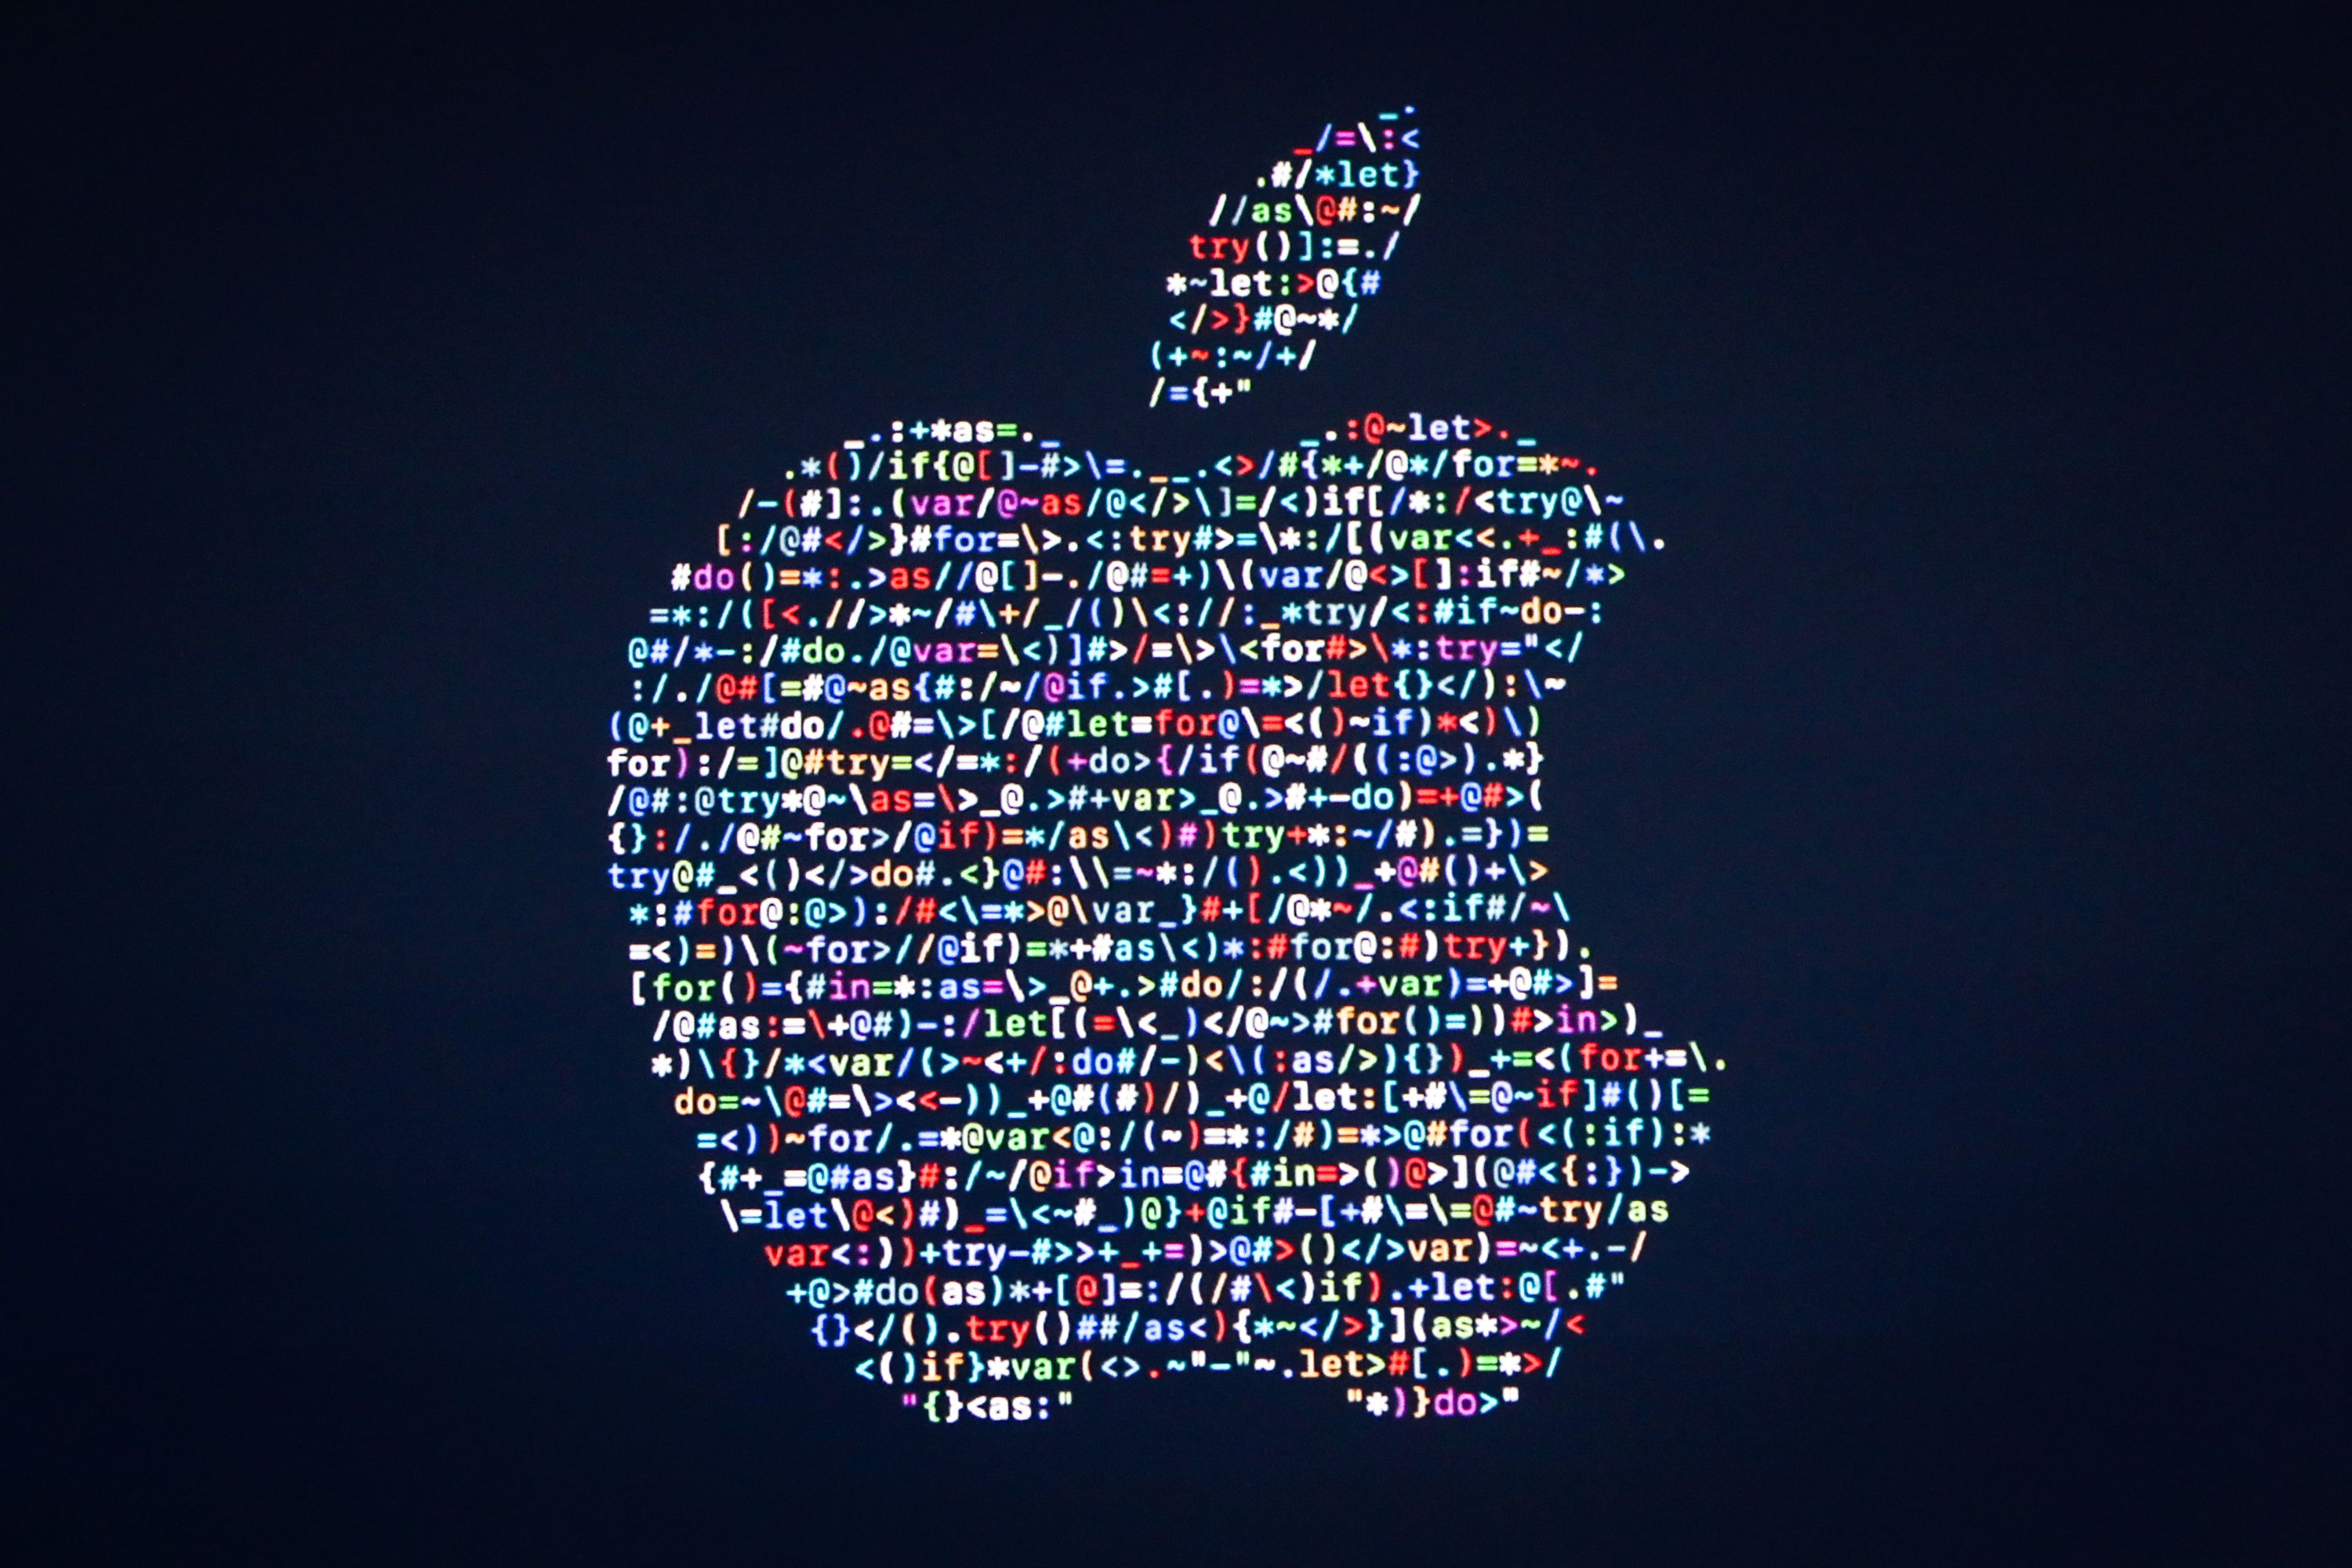 The Apple logo is displayed on a screen at Apple's annual Worldwide Developers Conference presentation at the Bill Graham Civic Auditorium in San Francisco on June 13.